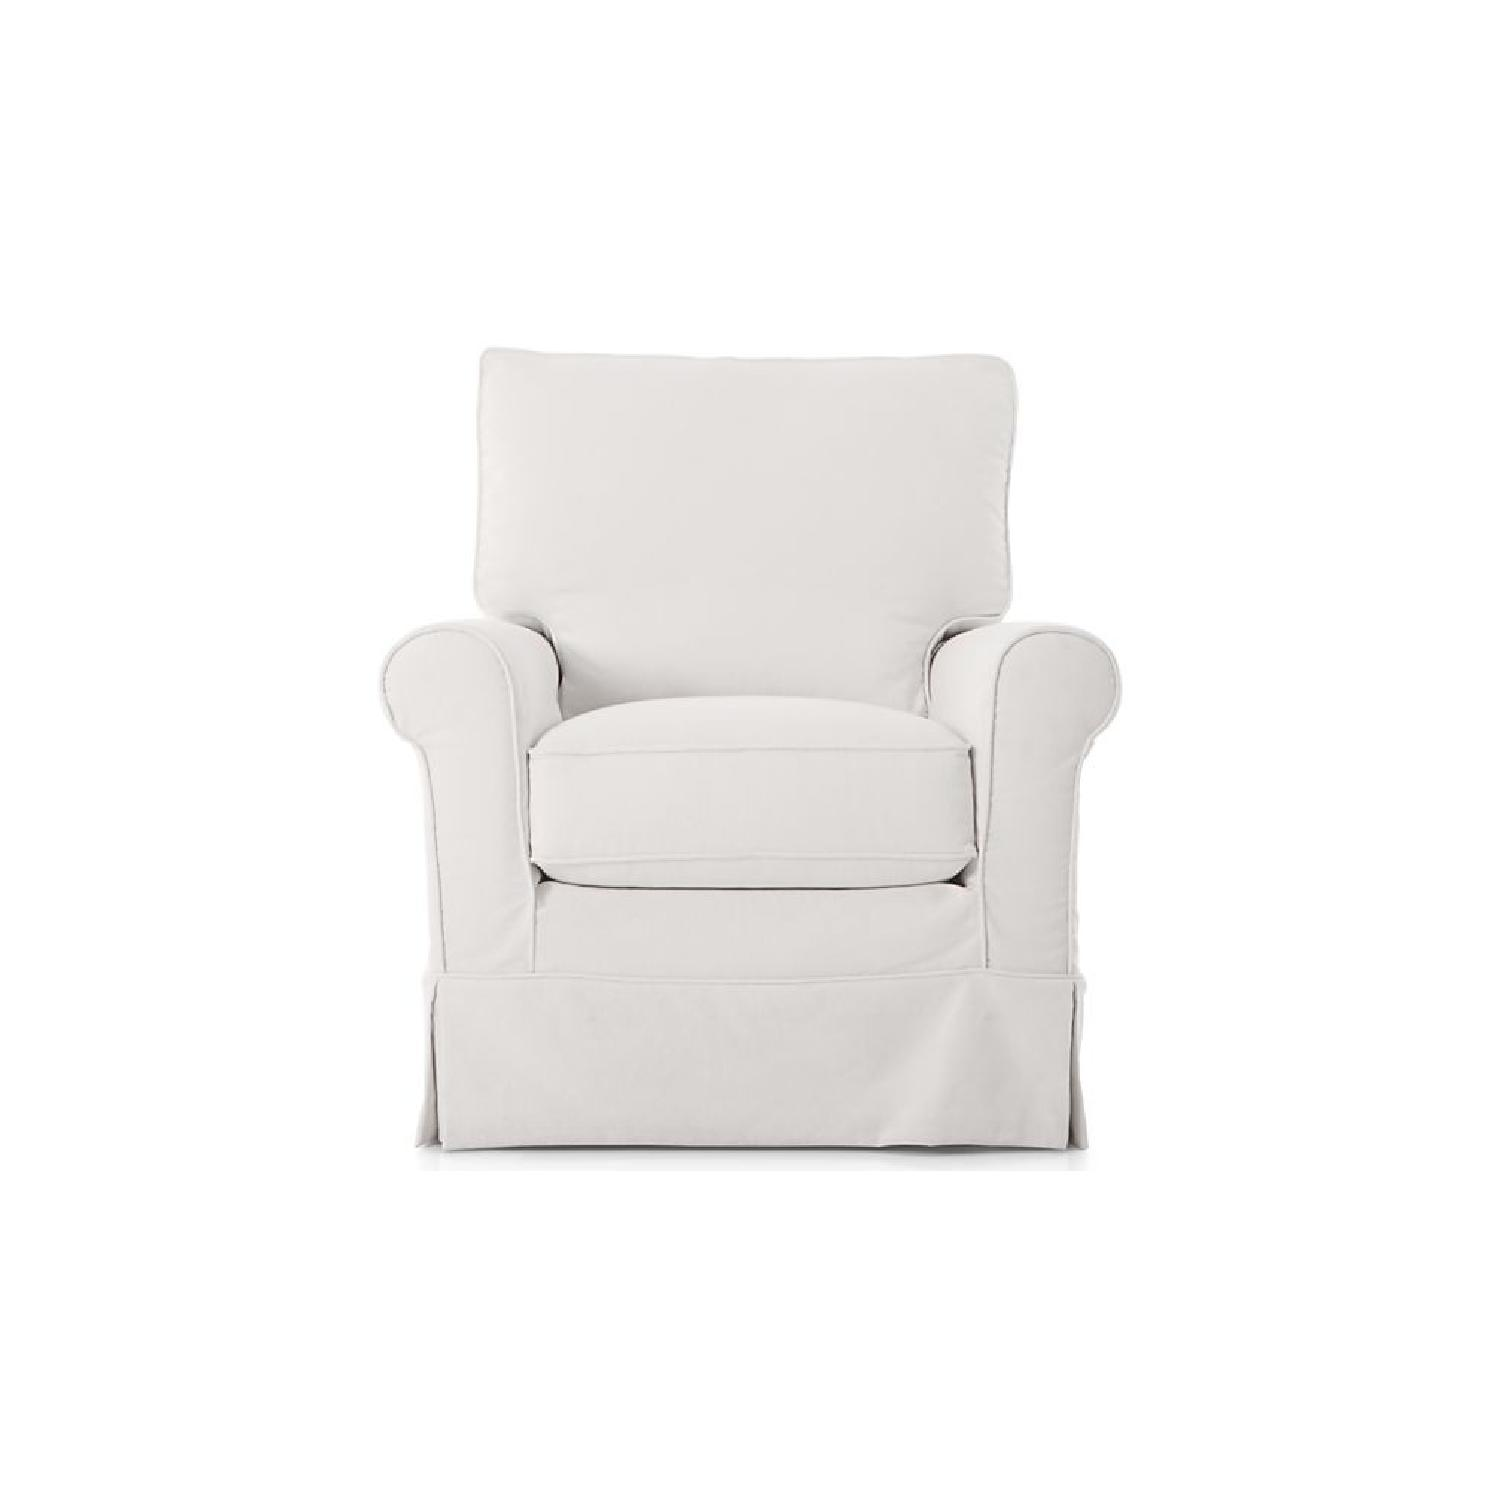 Crate & Barrel Harborside Slipcovered Swivel Glider AptDeco